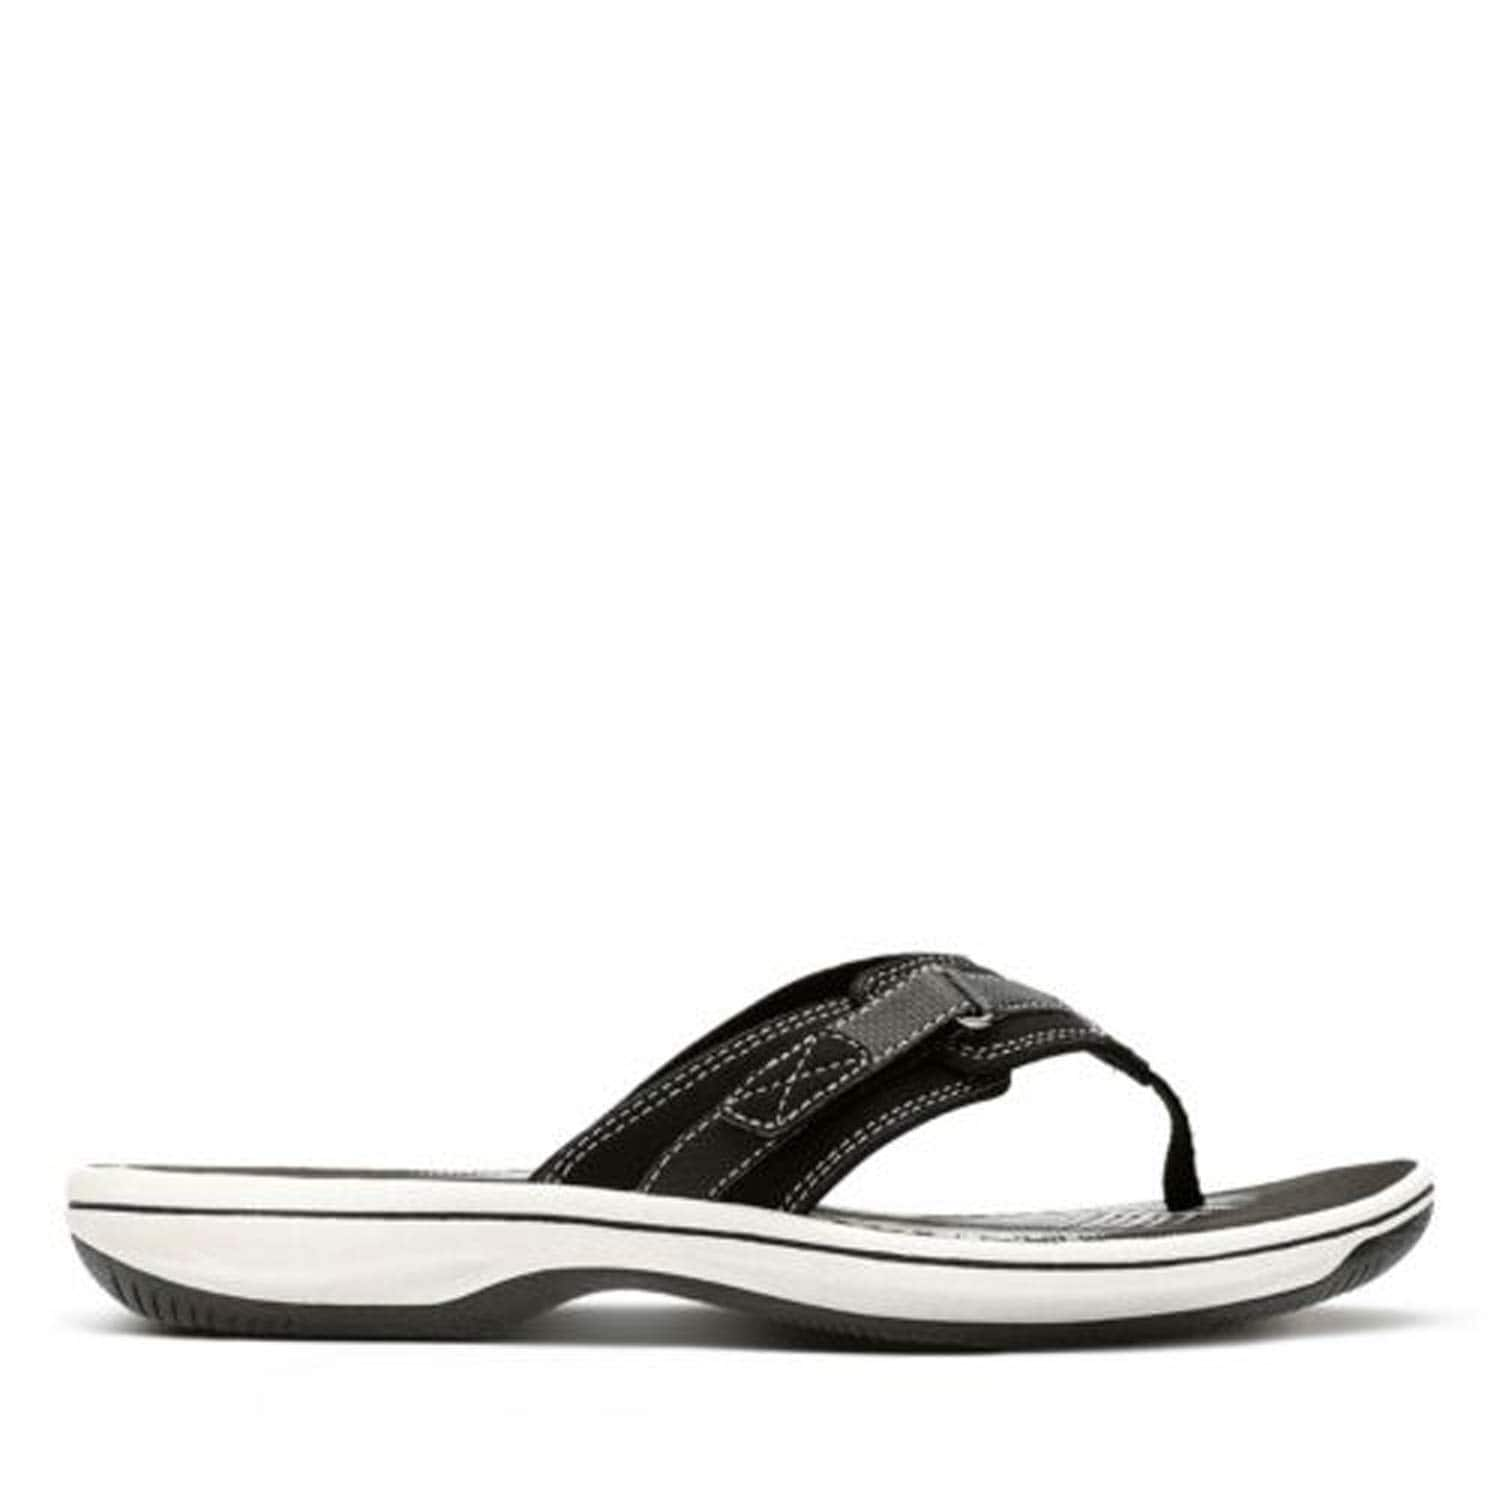 Amazon has Clark's Women's Breeze Sea Flip-Flops starting from $26.02 + free shipping!  Reg price $50-$55! Highly rated